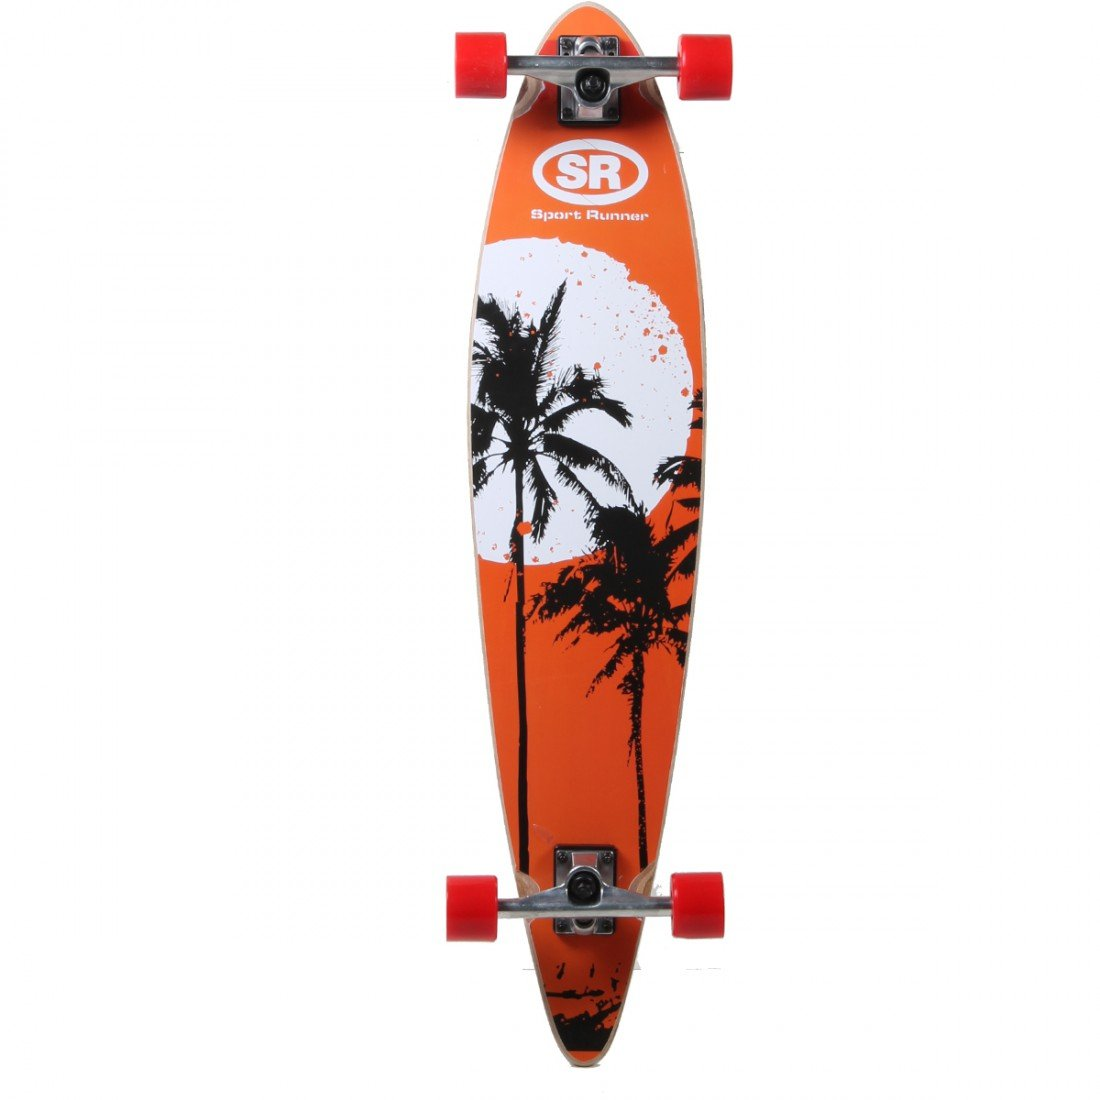 speelight goed YX-0220 F – Skateboard, Bois, Long, 97 cm